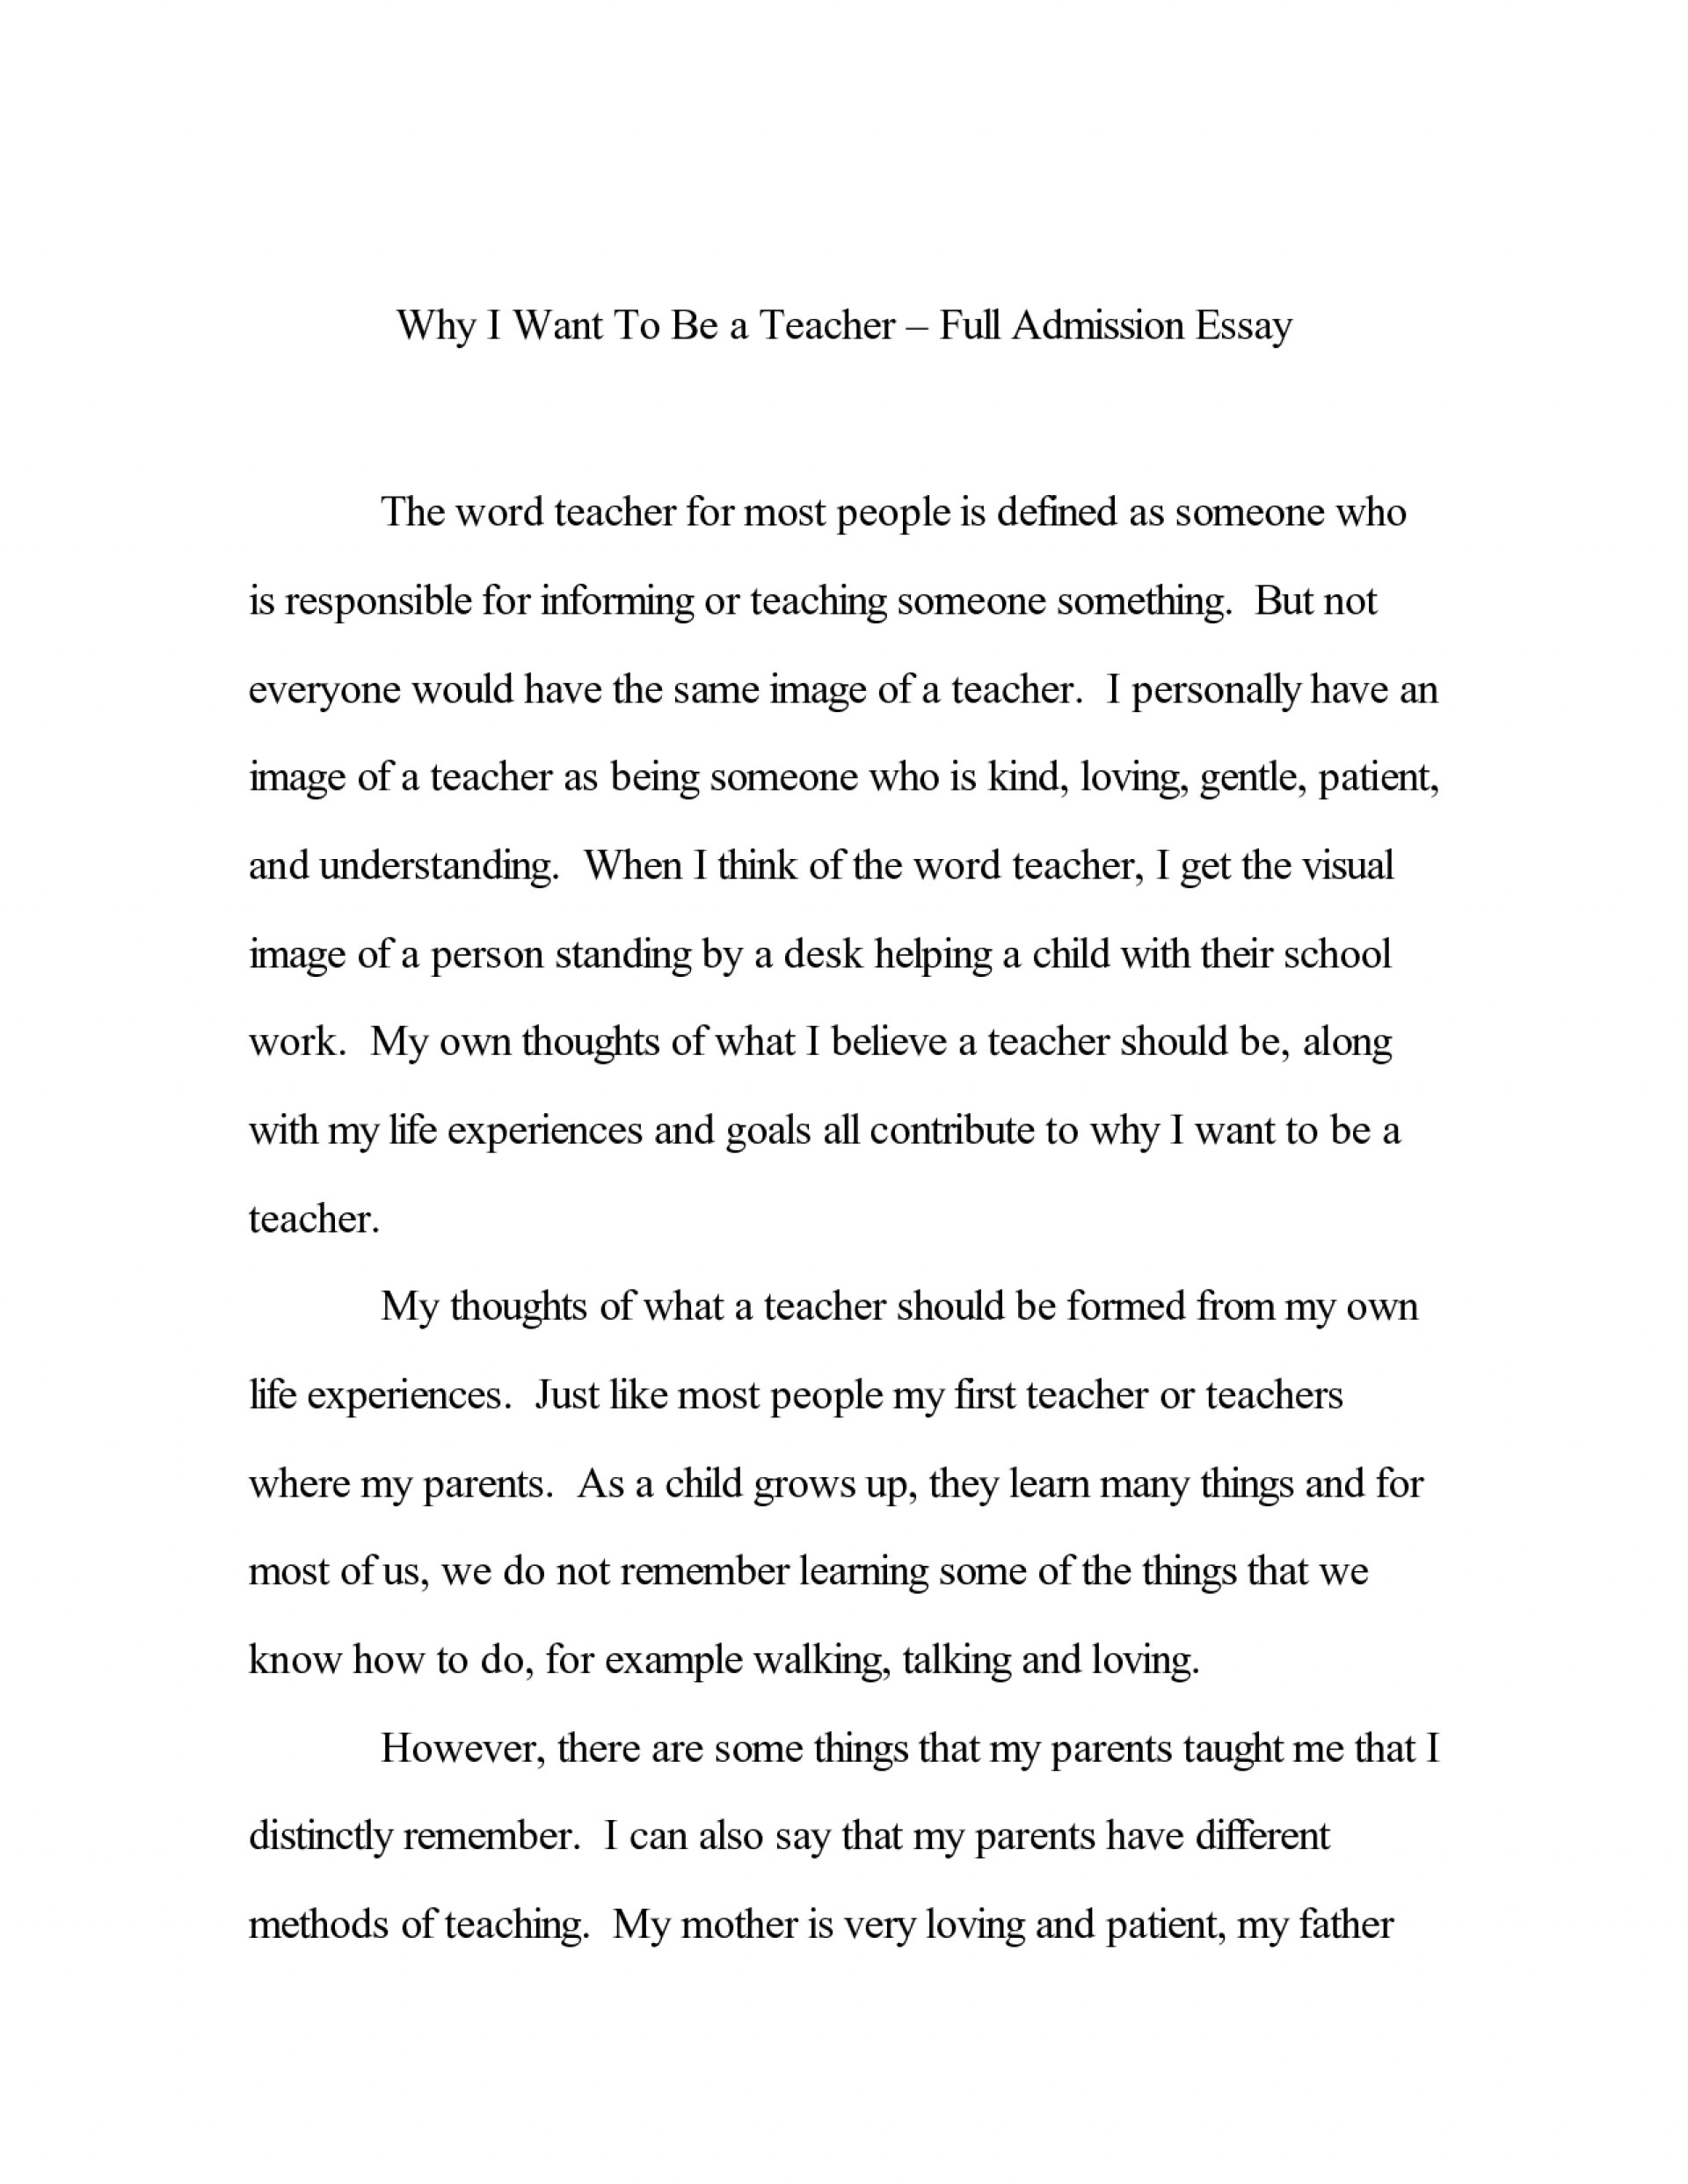 004 Writing College Application Essay Rare A About Yourself Examples Tips For Level How To Write Research Paper Outline 1920